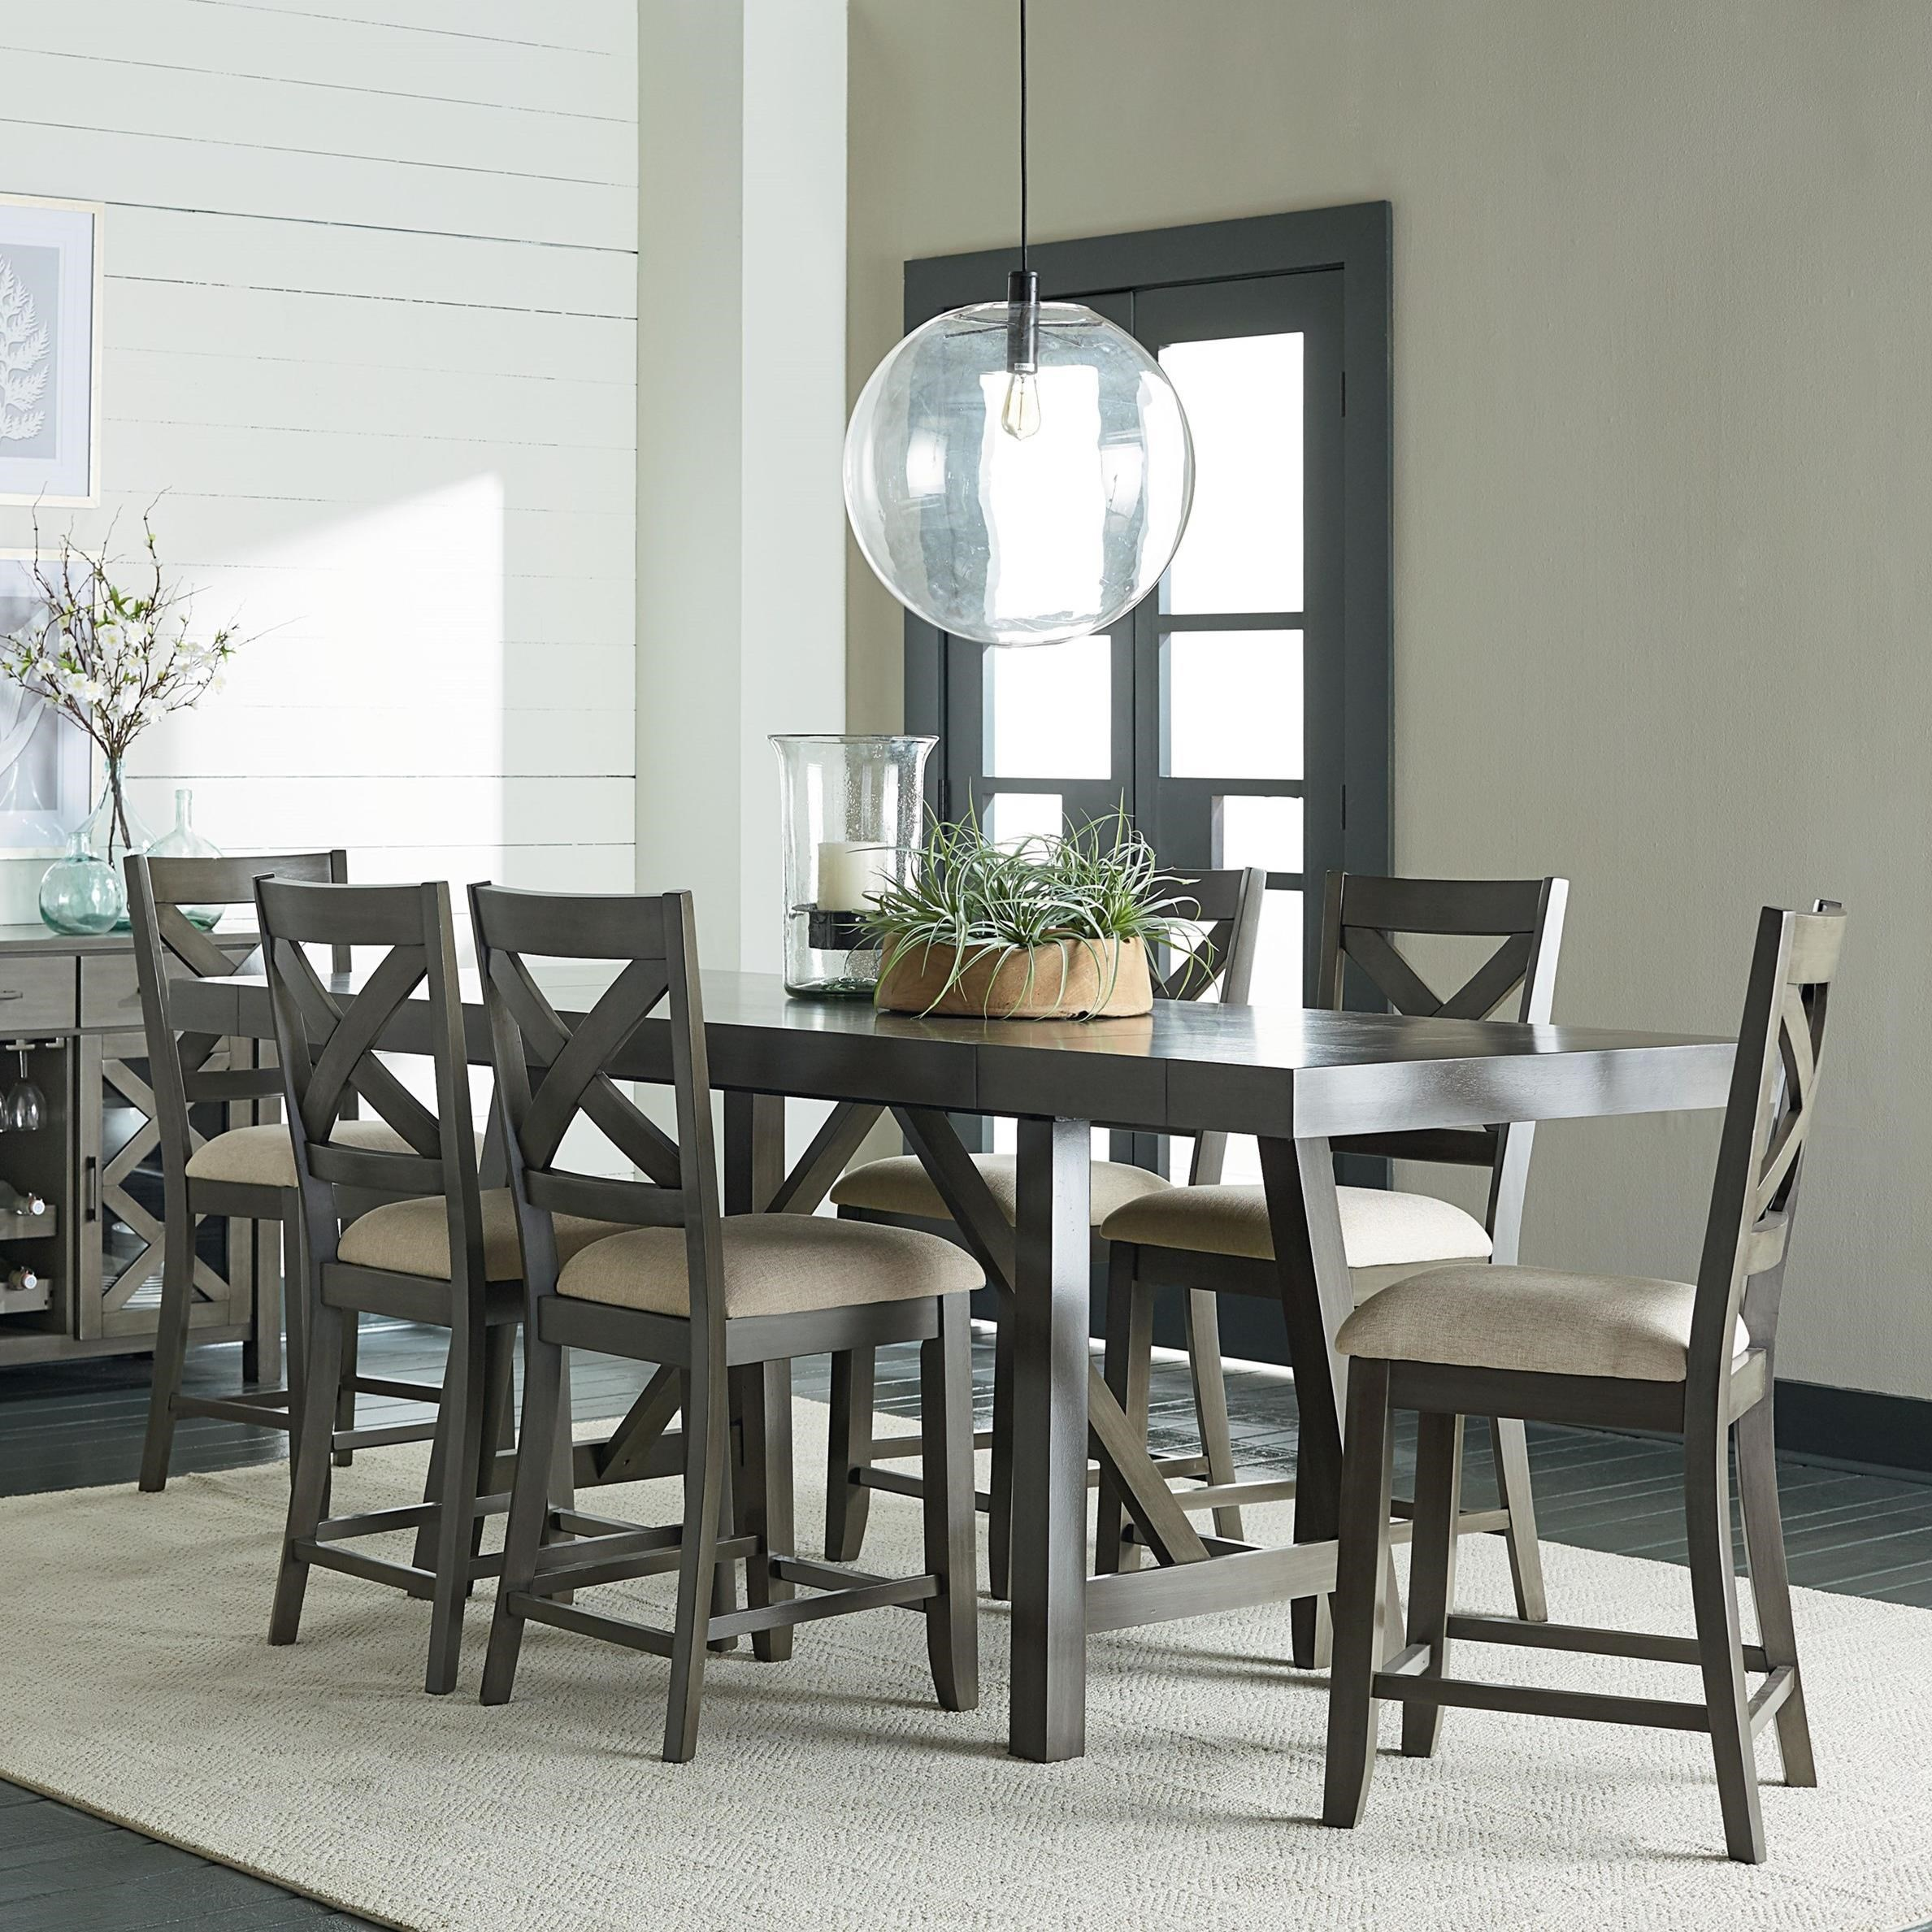 Standard Furniture Omaha Grey Counter Height 7-Piece Dining Room Table Set : 7 piece pub table set - pezcame.com